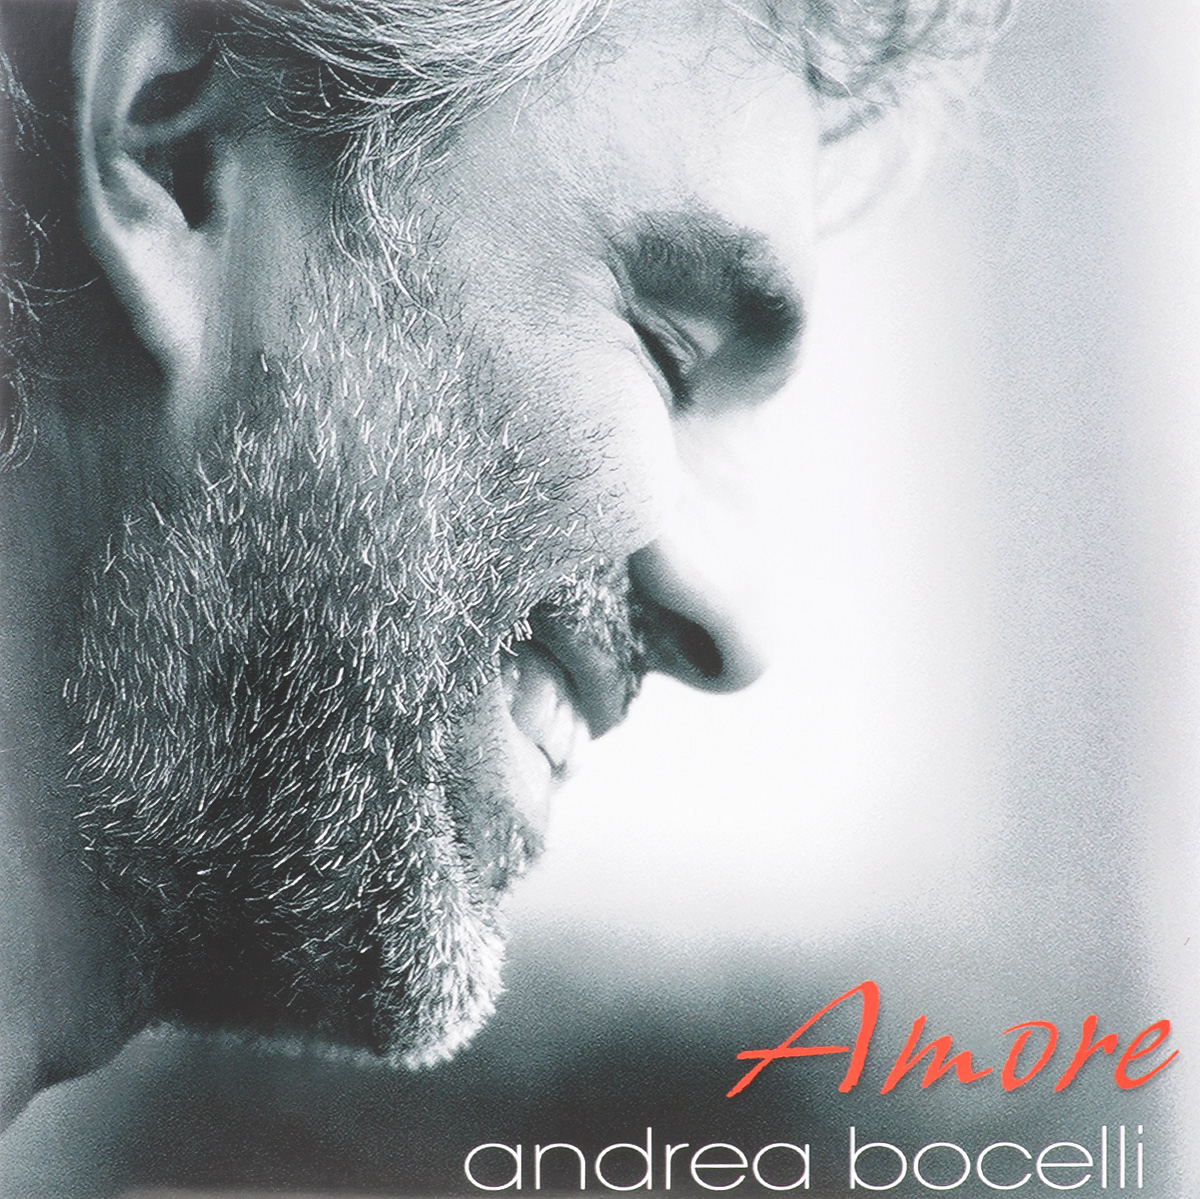 Андреа Бочелли Andrea Bocelli. Amore (2 LP) hindi zahra hindi zahra homeland 2 lp